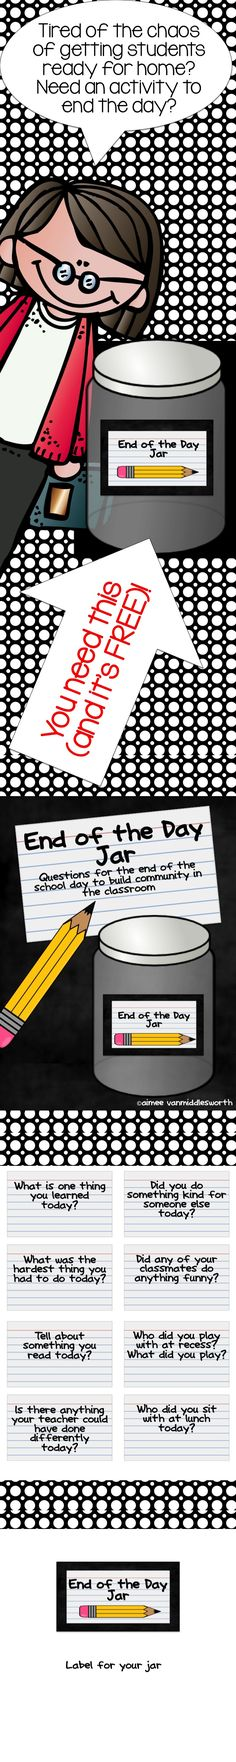 The End of the DayJar is a great way to build classroom community and is wonderful for classroom management! Classroom Behavior Management, Classroom Organisation, Kindergarten Classroom, School Classroom, Classroom Activities, School Fun, School Days, Future Classroom, Behaviour Management